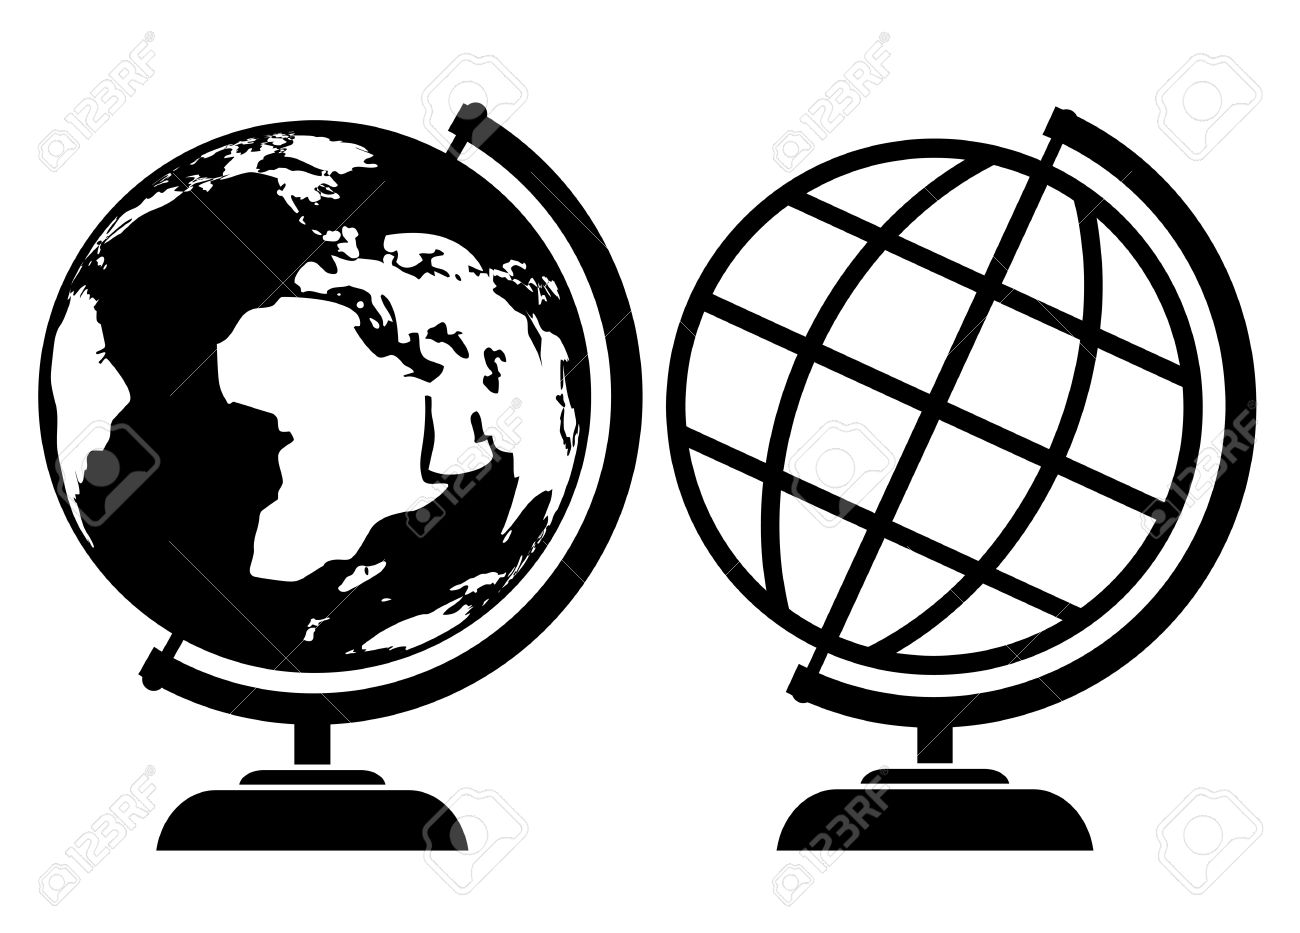 globe icons royalty free cliparts vectors and stock illustration rh 123rf com globe icon vector png global icon vector